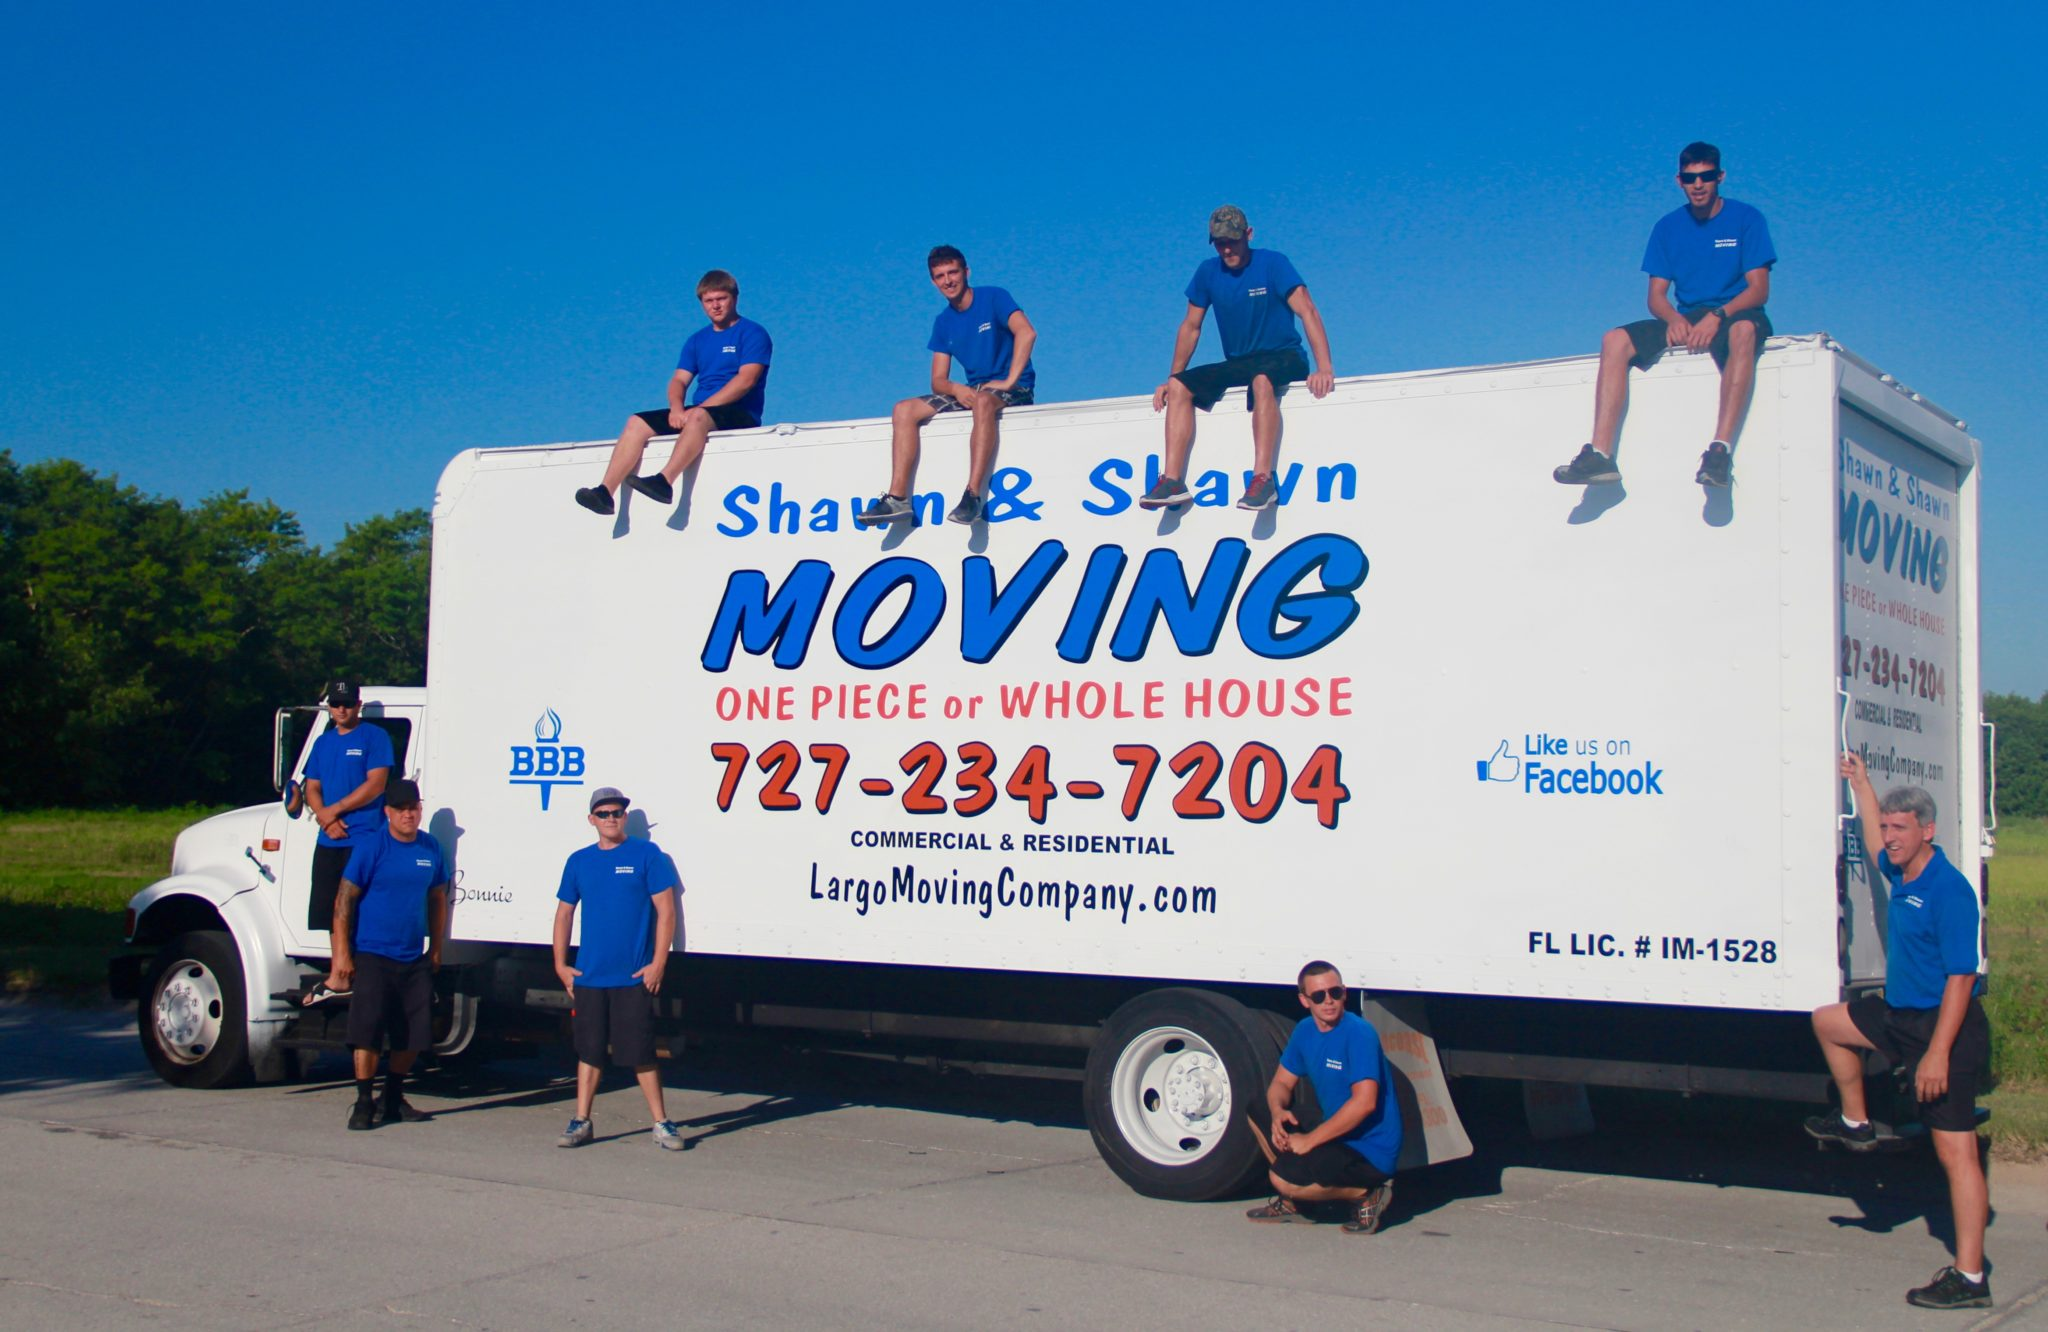 Tierra Verde Movers | Shawn & Shawn Moving Company | Largo, Florida